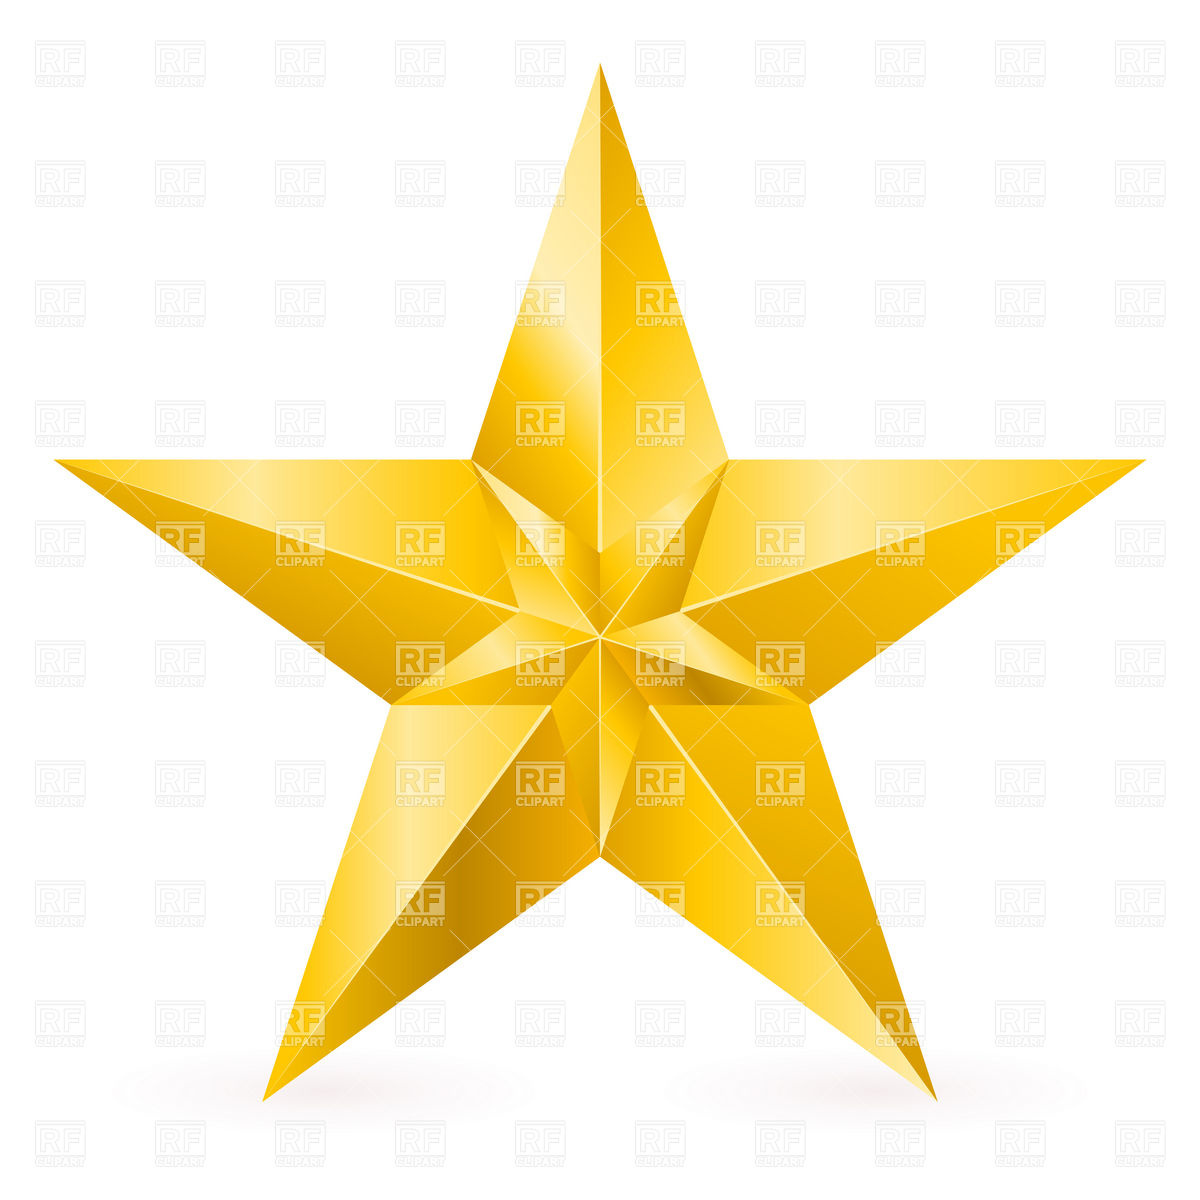 Star 8281 Design Elements Download Royalty Free Vector Clipart  Eps